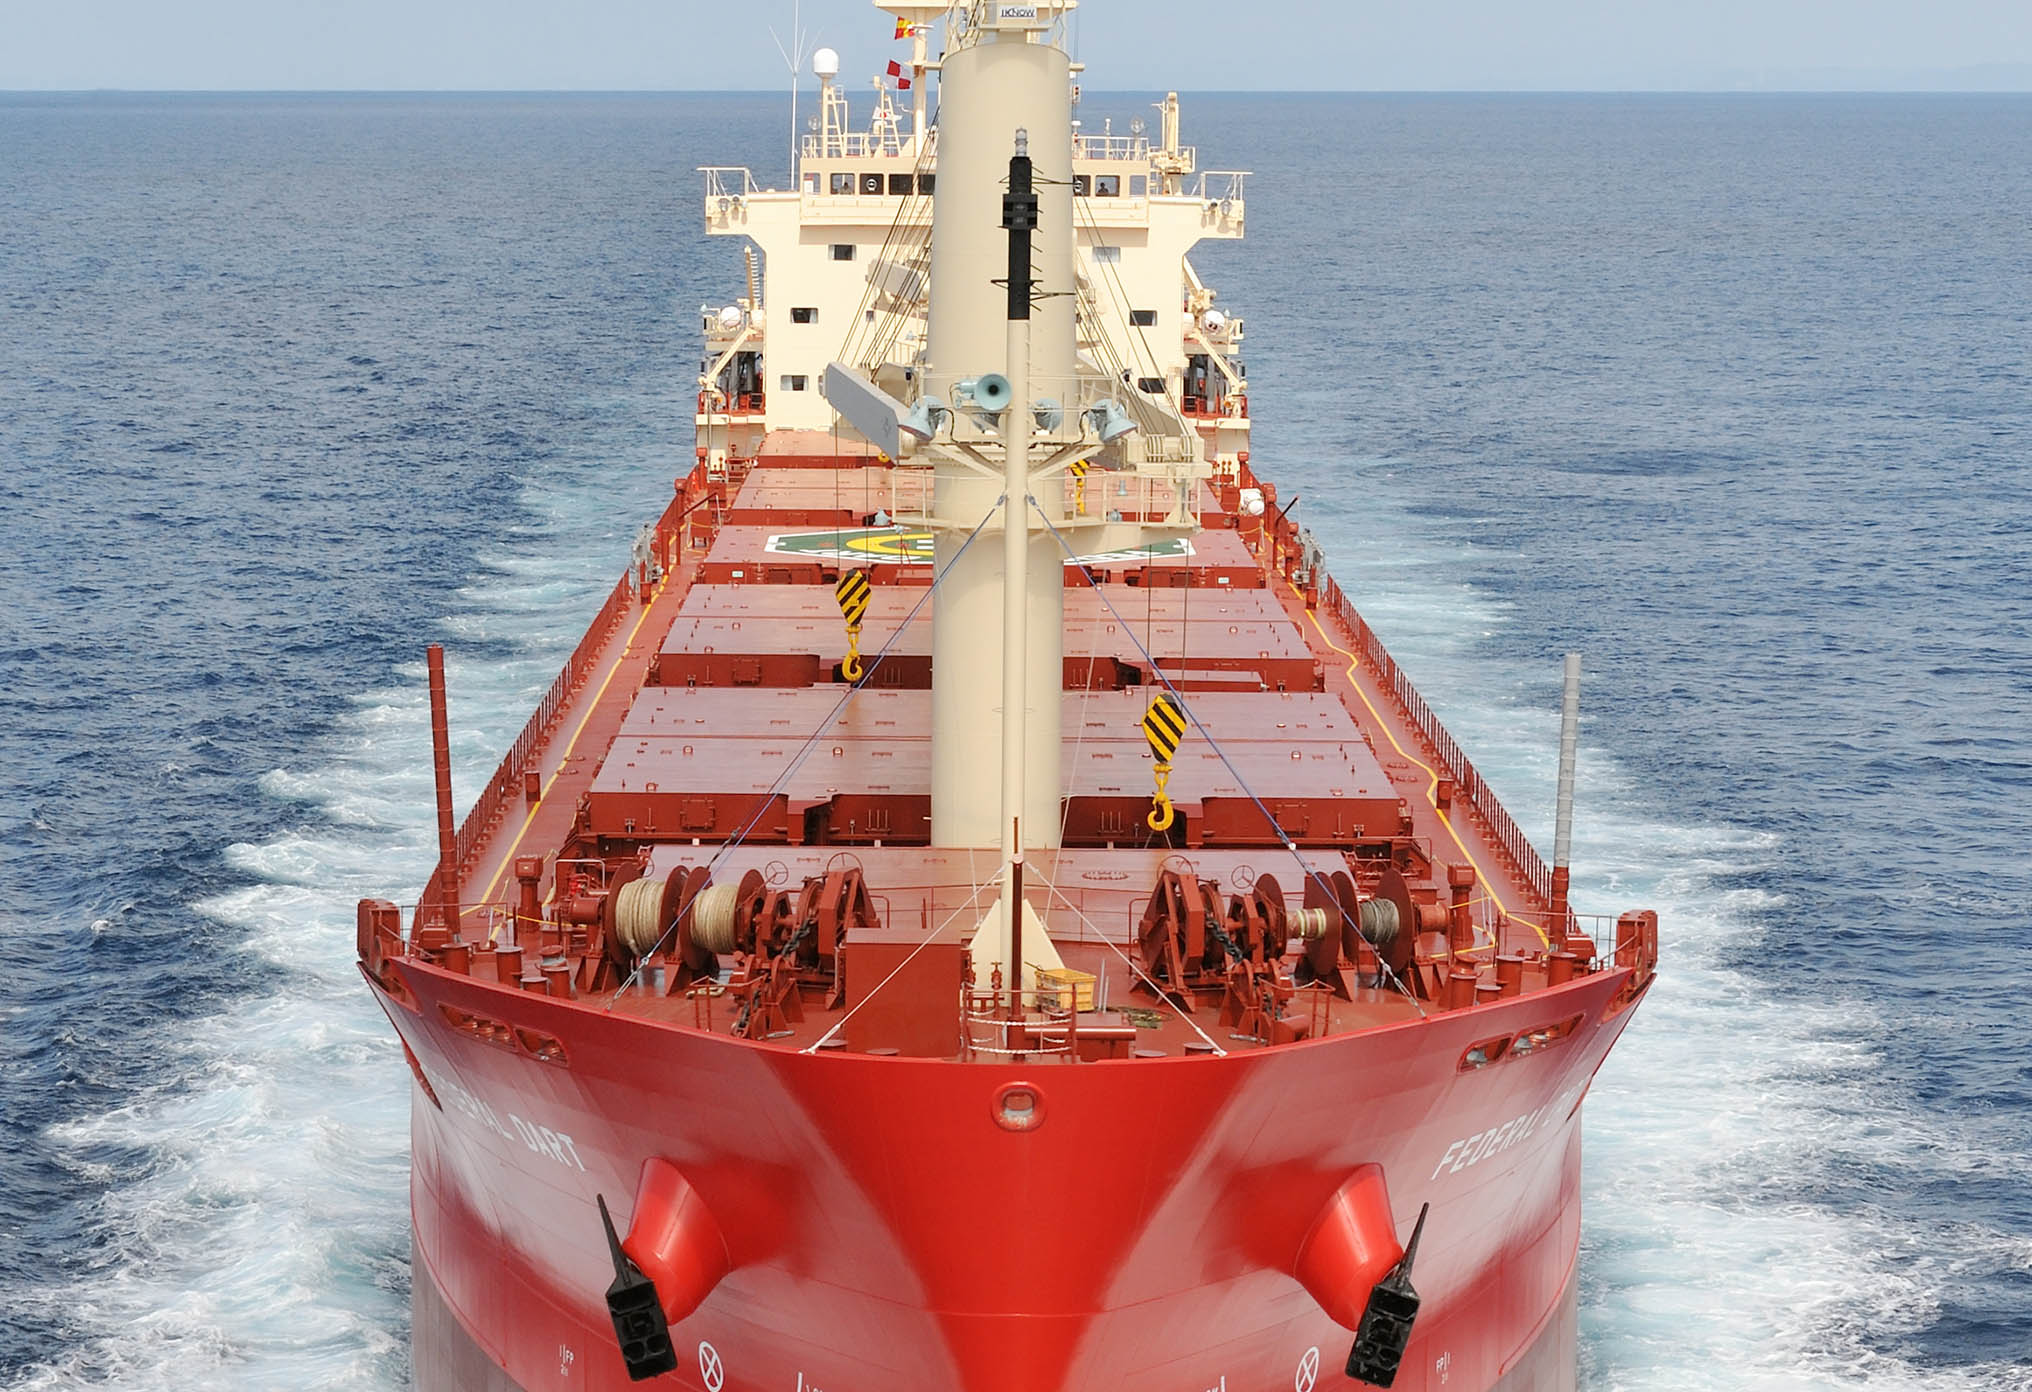 Fednav signs up for ballast systems